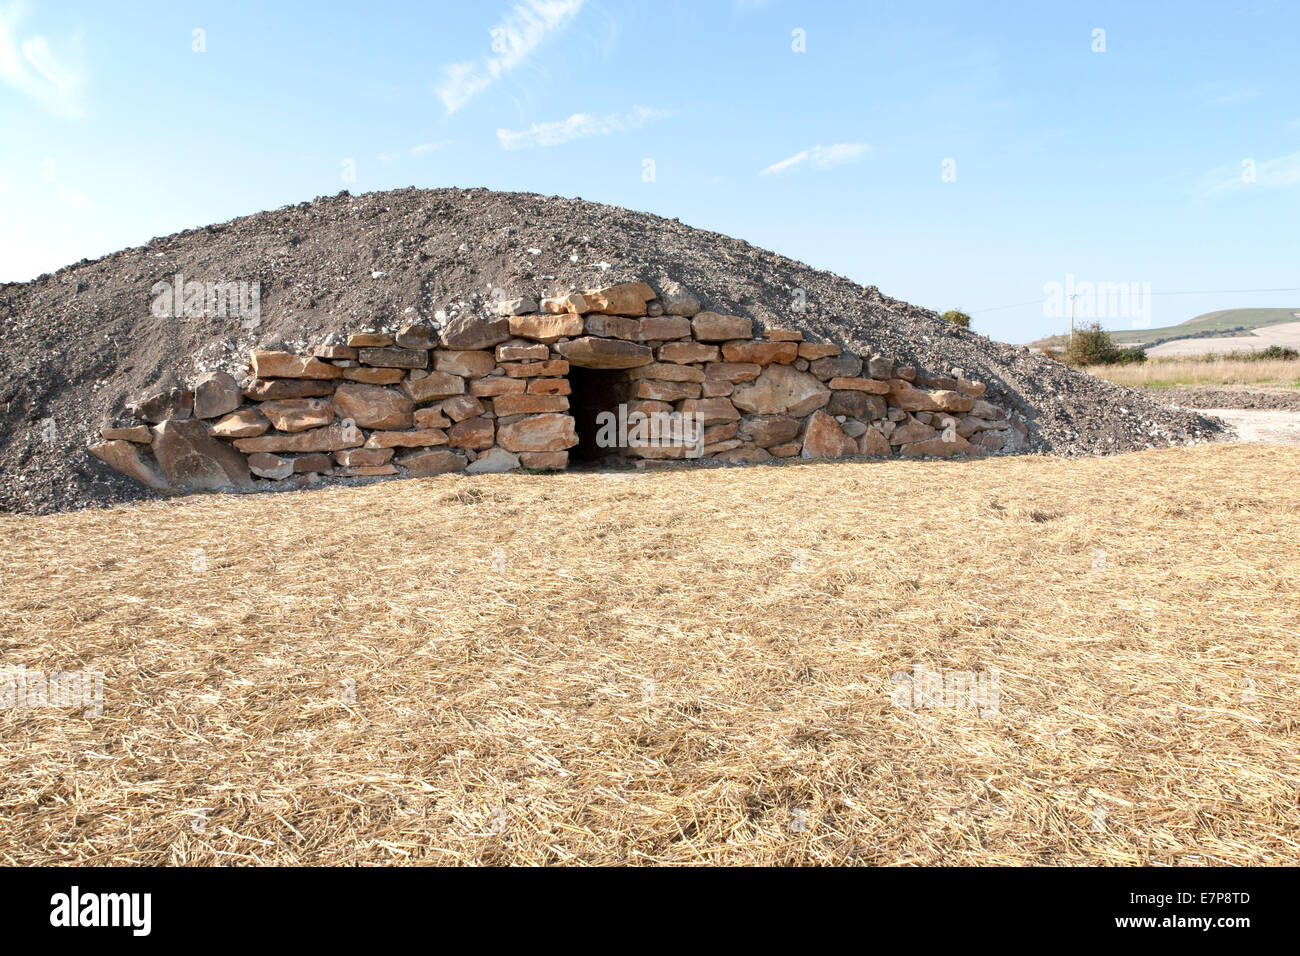 Neolithic Architectural Style Modern Day Neolithic Style Long Barrow Burial Chamber For